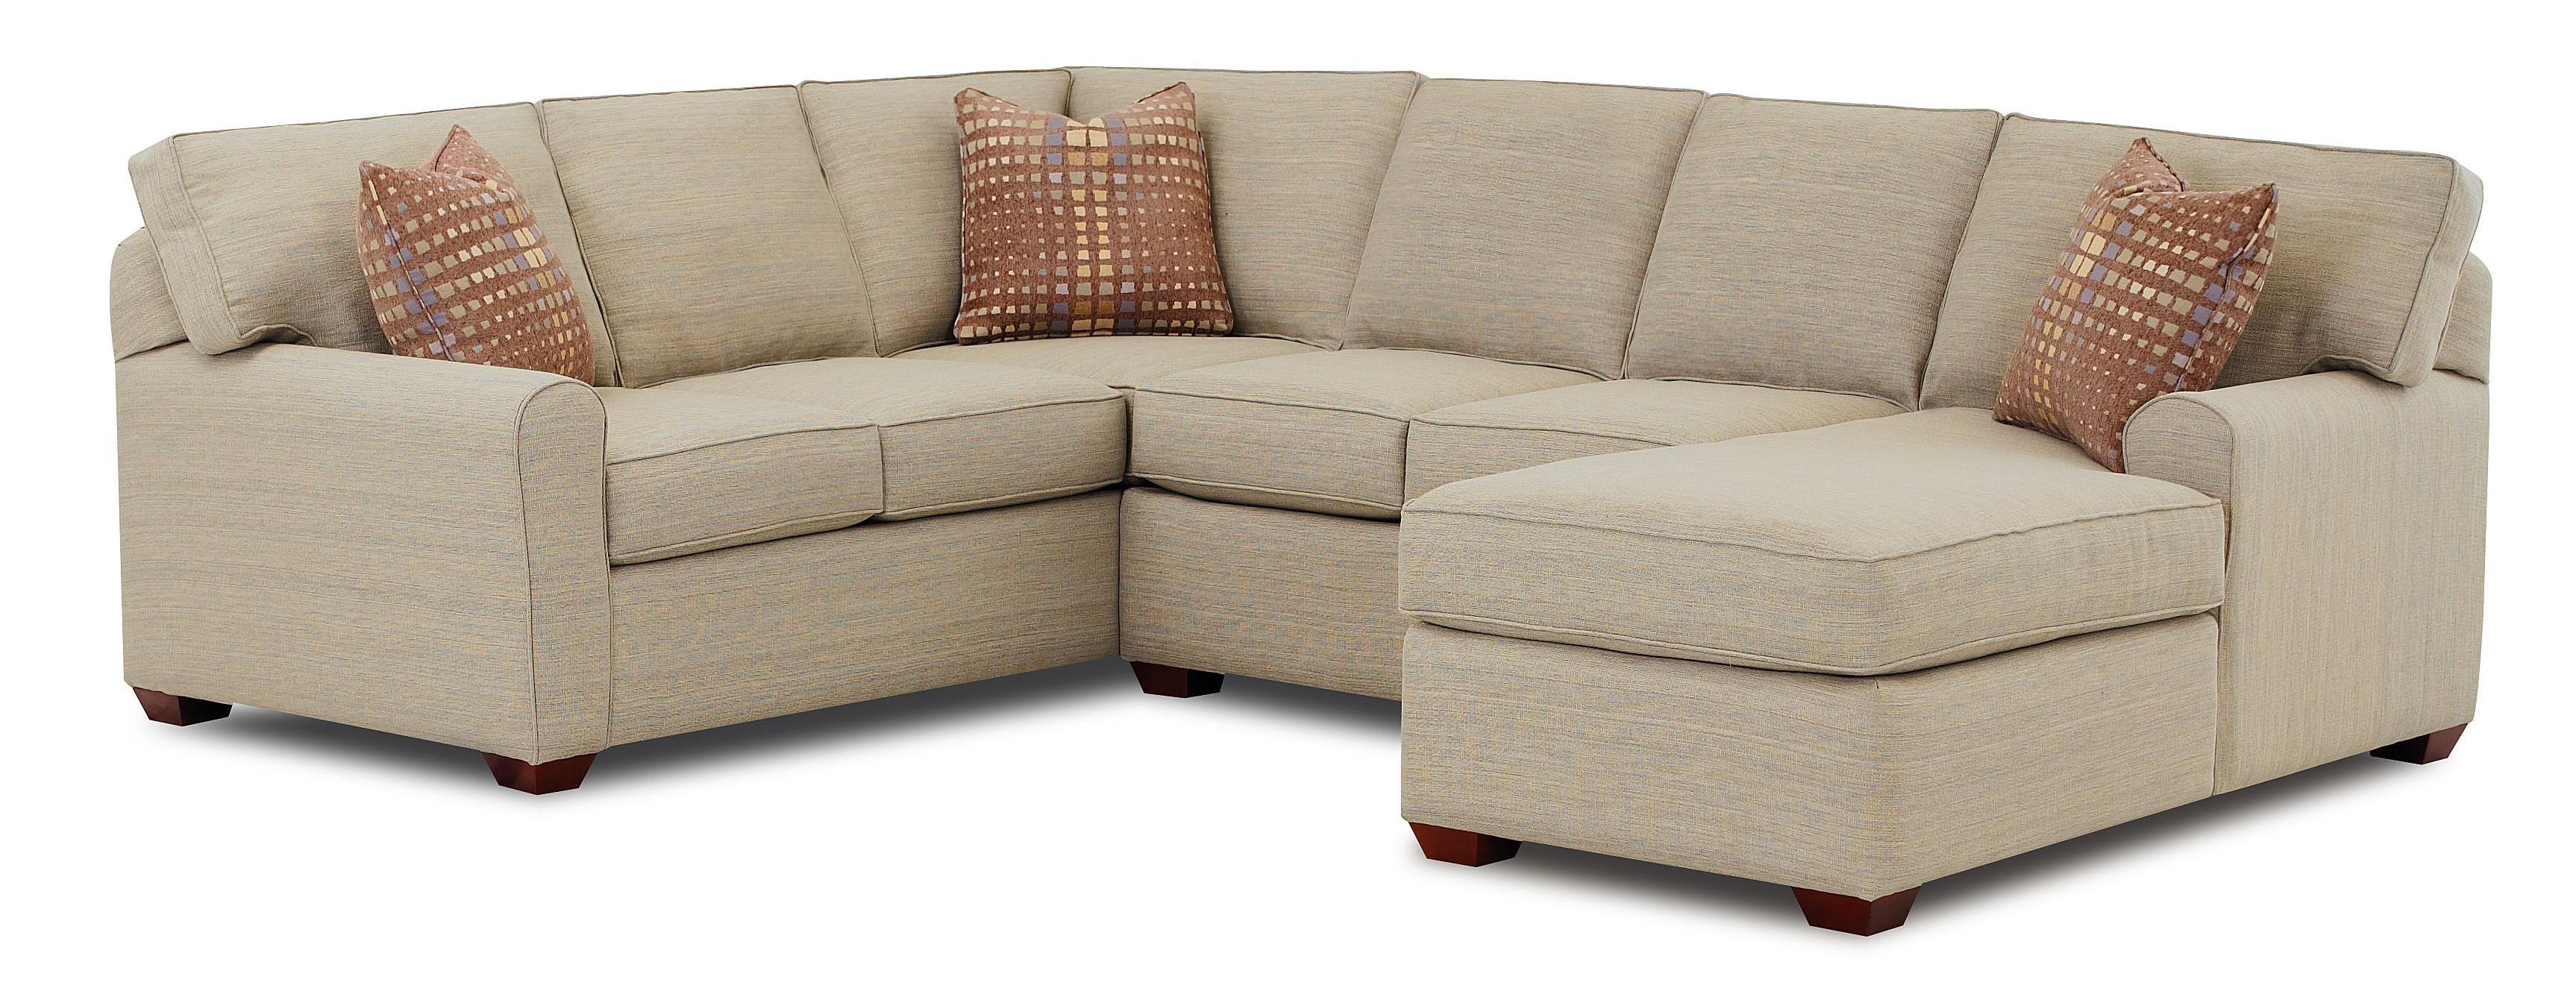 Sofa With Chaise Lounge Sectional Sofa With Right Facing Chaise Lounge By